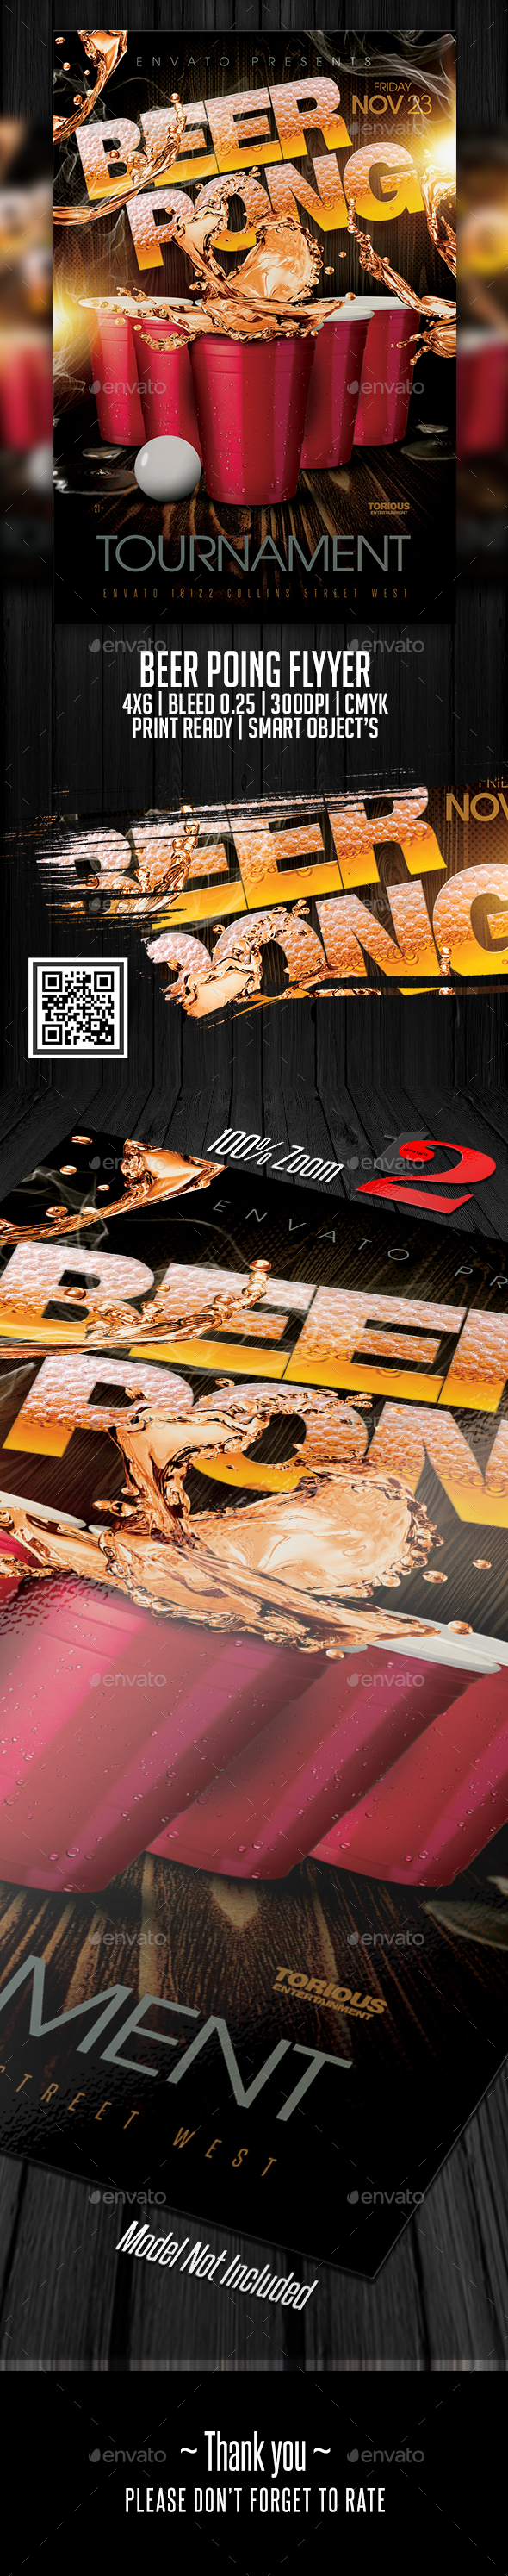 Beer Pong Flyer Template - Clubs & Parties Events